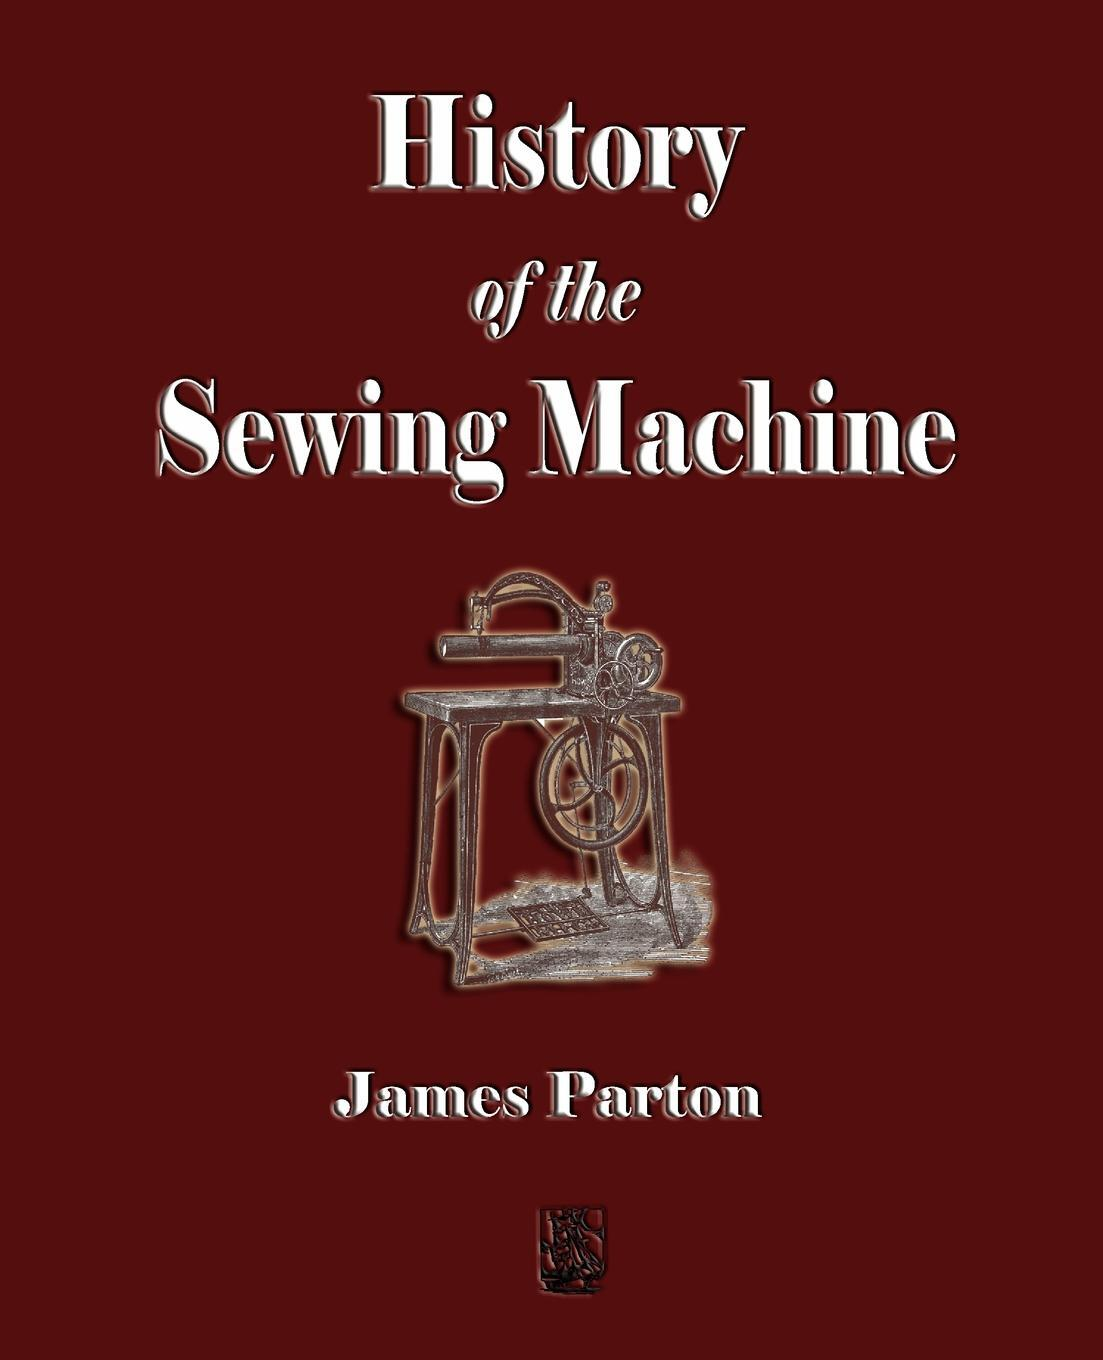 History of the Sewing Machine. James Parton